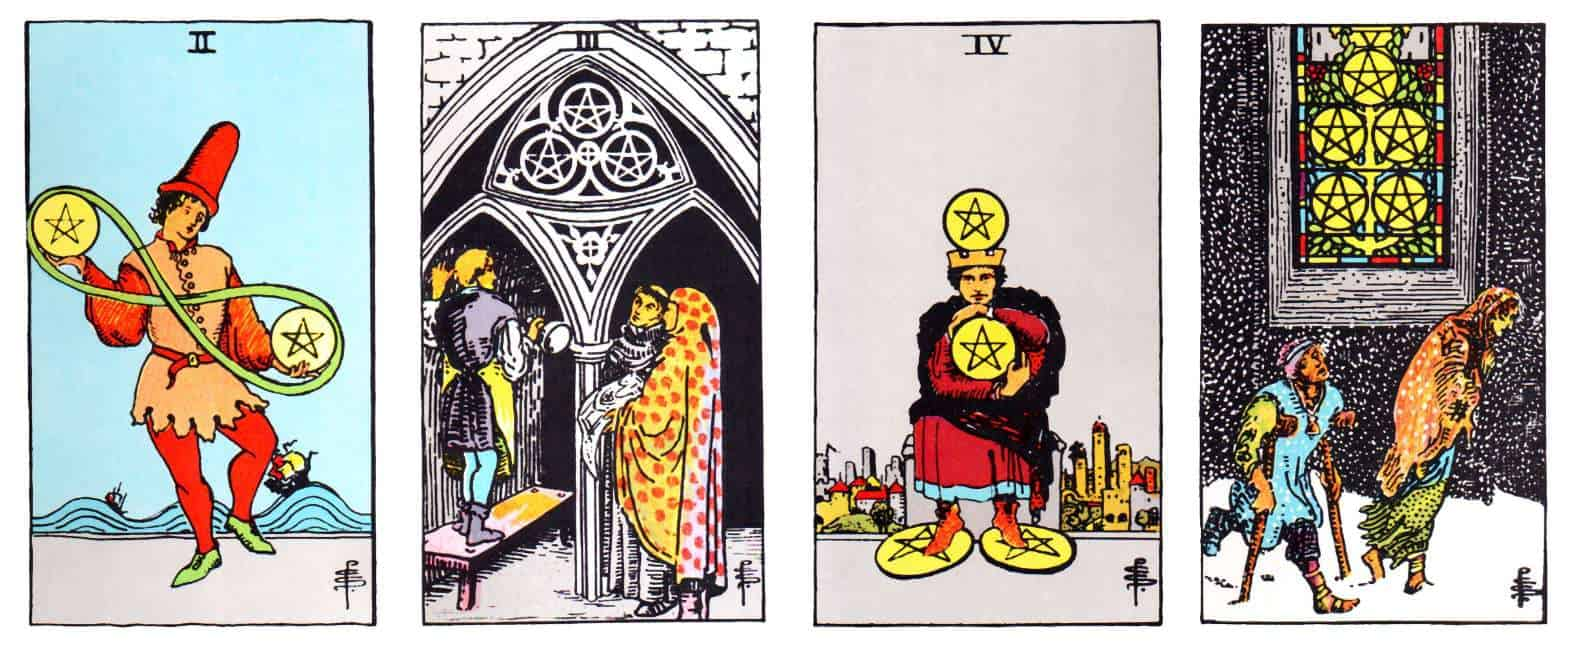 minor arcana suits of pentacles